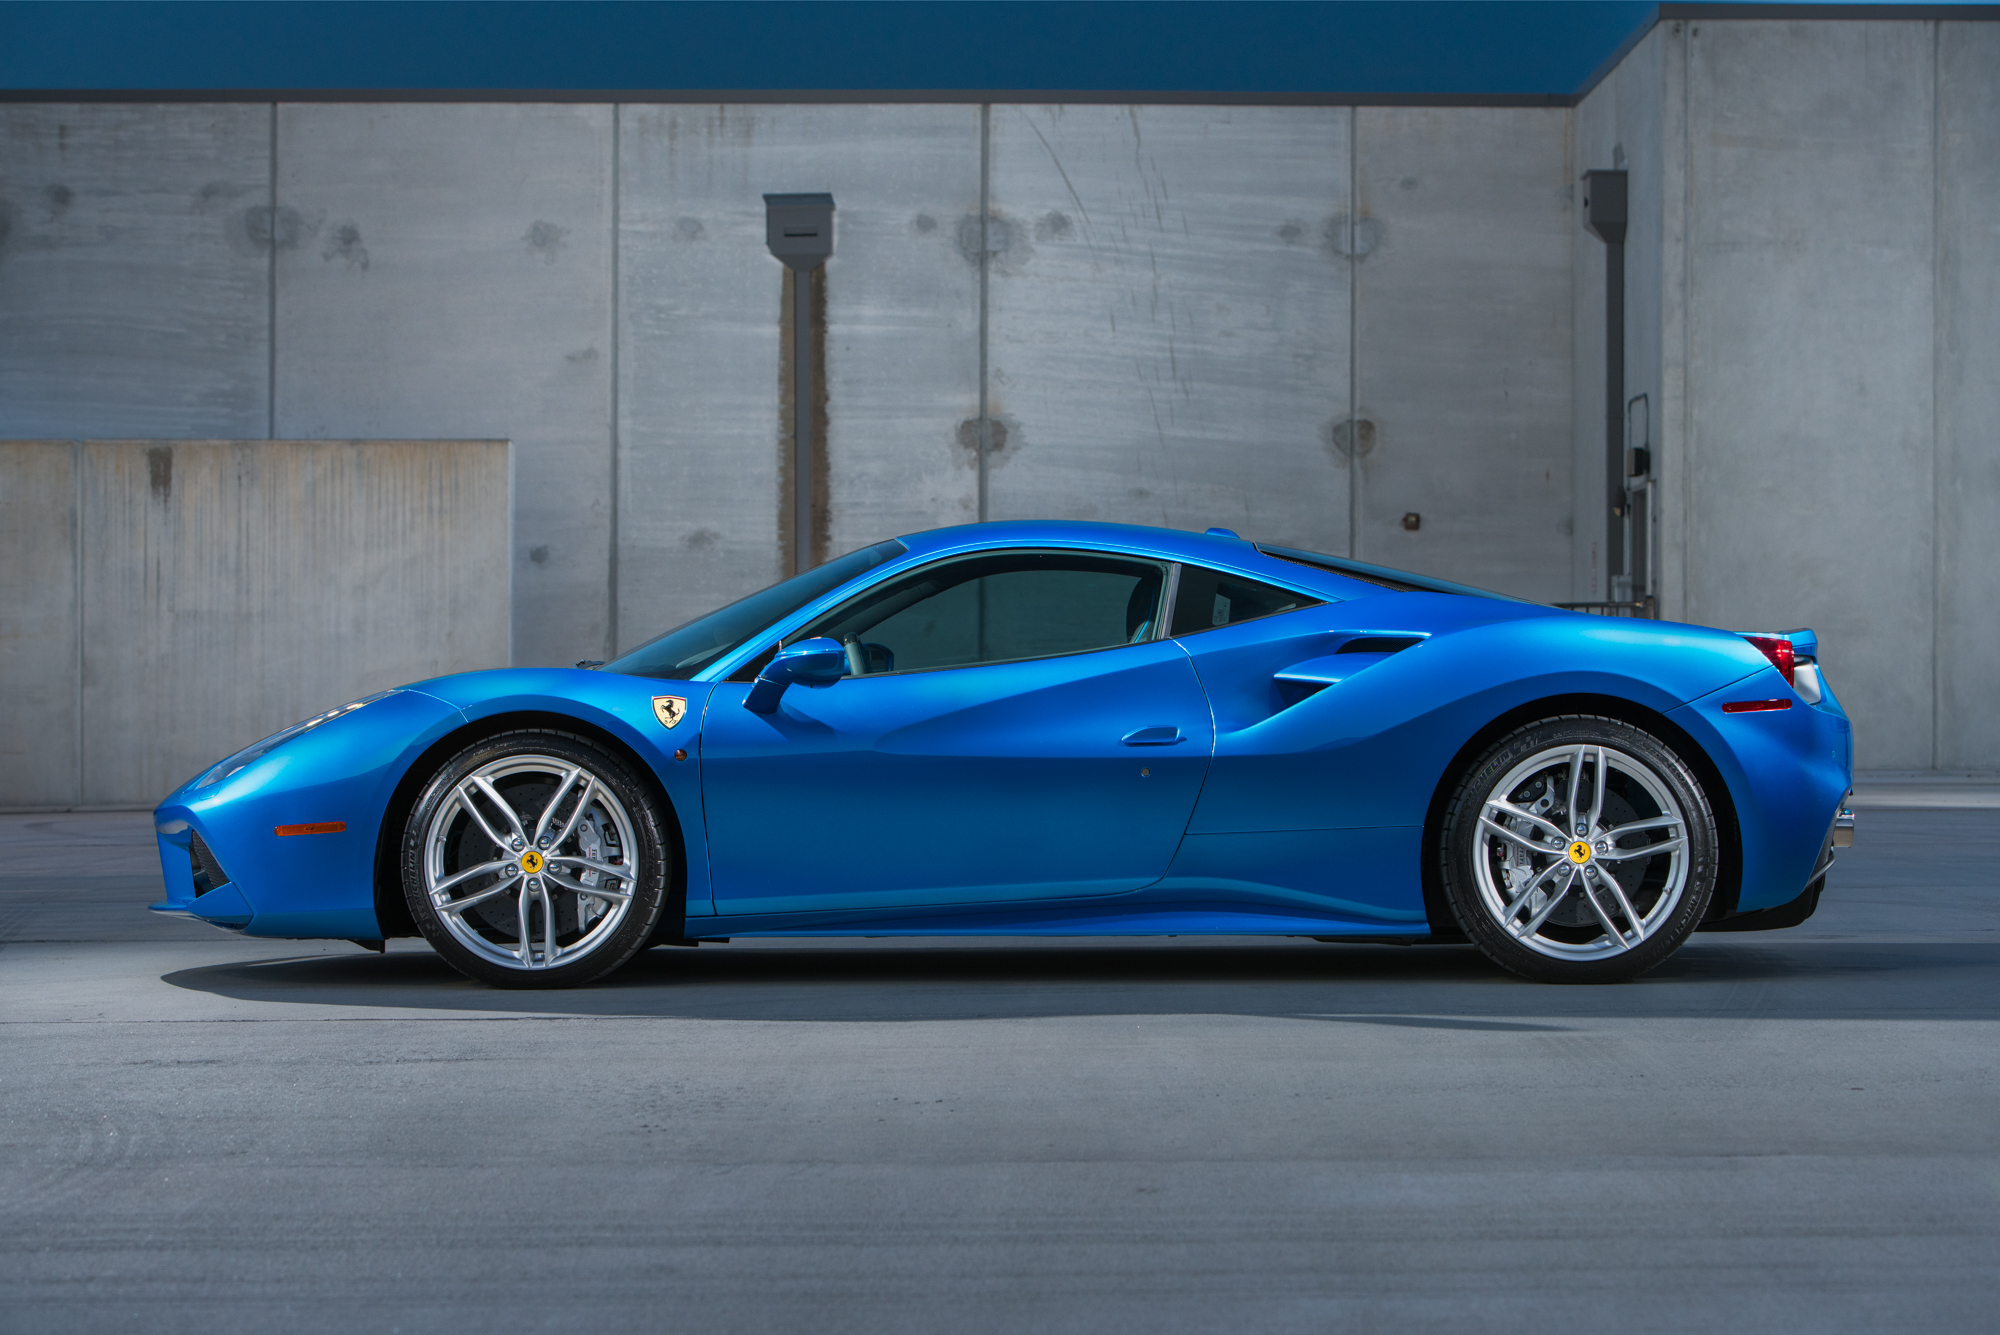 Ferrari 488GTB by Ian Roth Automotive Photographer